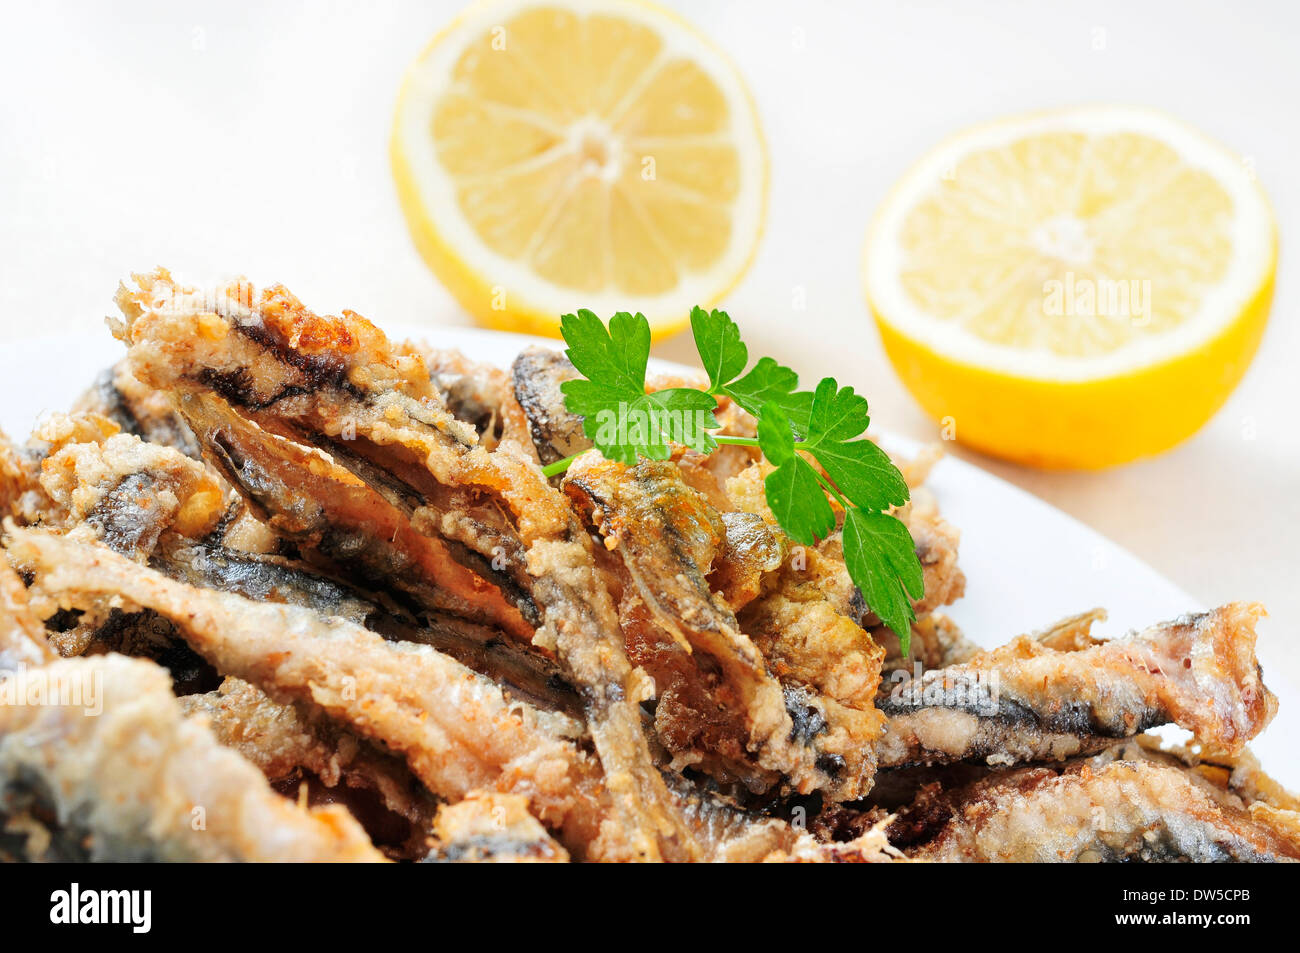 closeup of a plate with spanish boquerones fritos, battered and fried anchovies typical in Spain - Stock Image